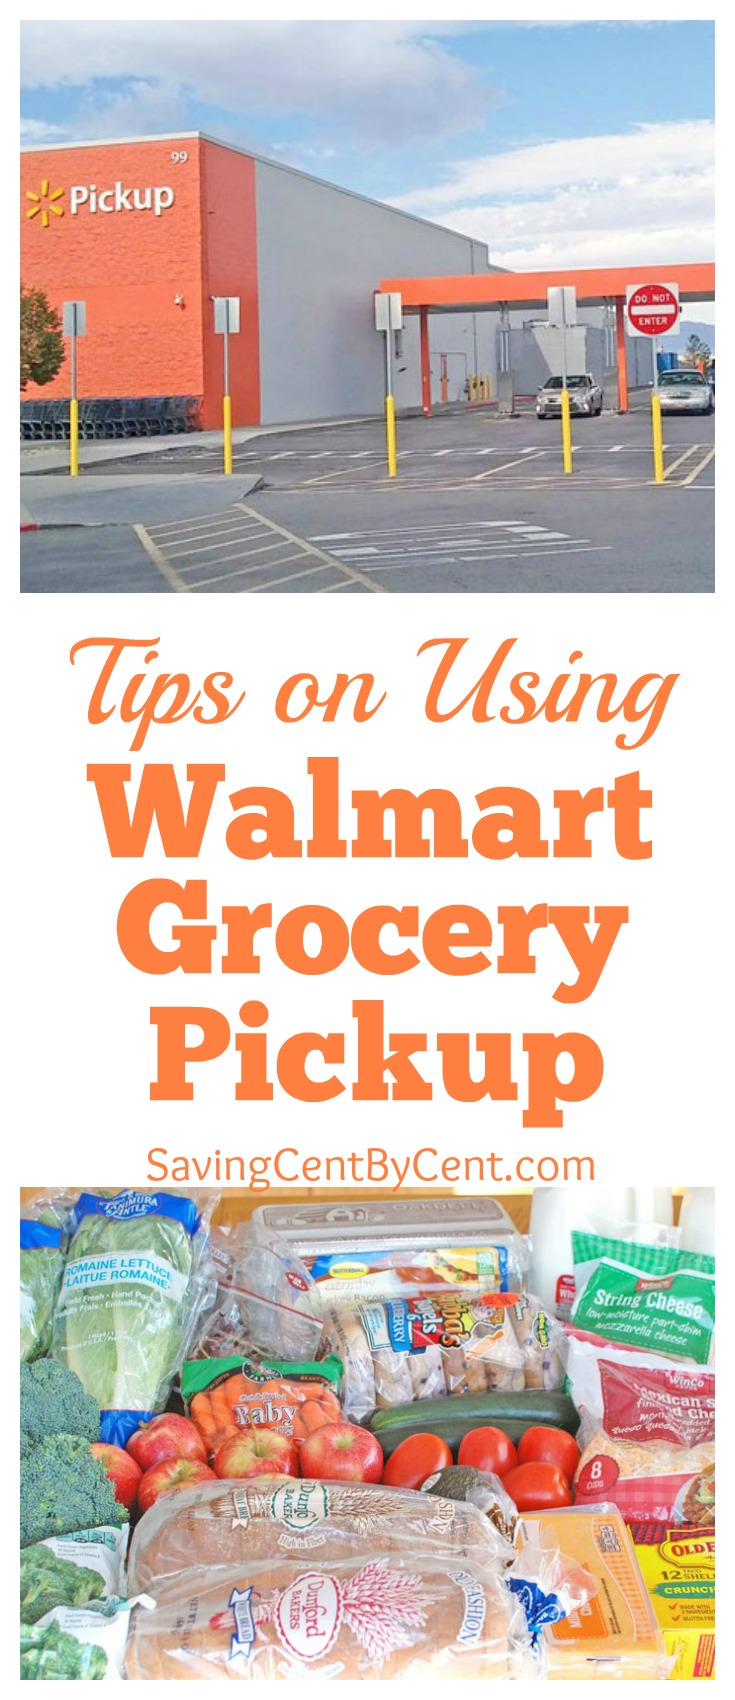 Walmart Grocery Pickup Tips